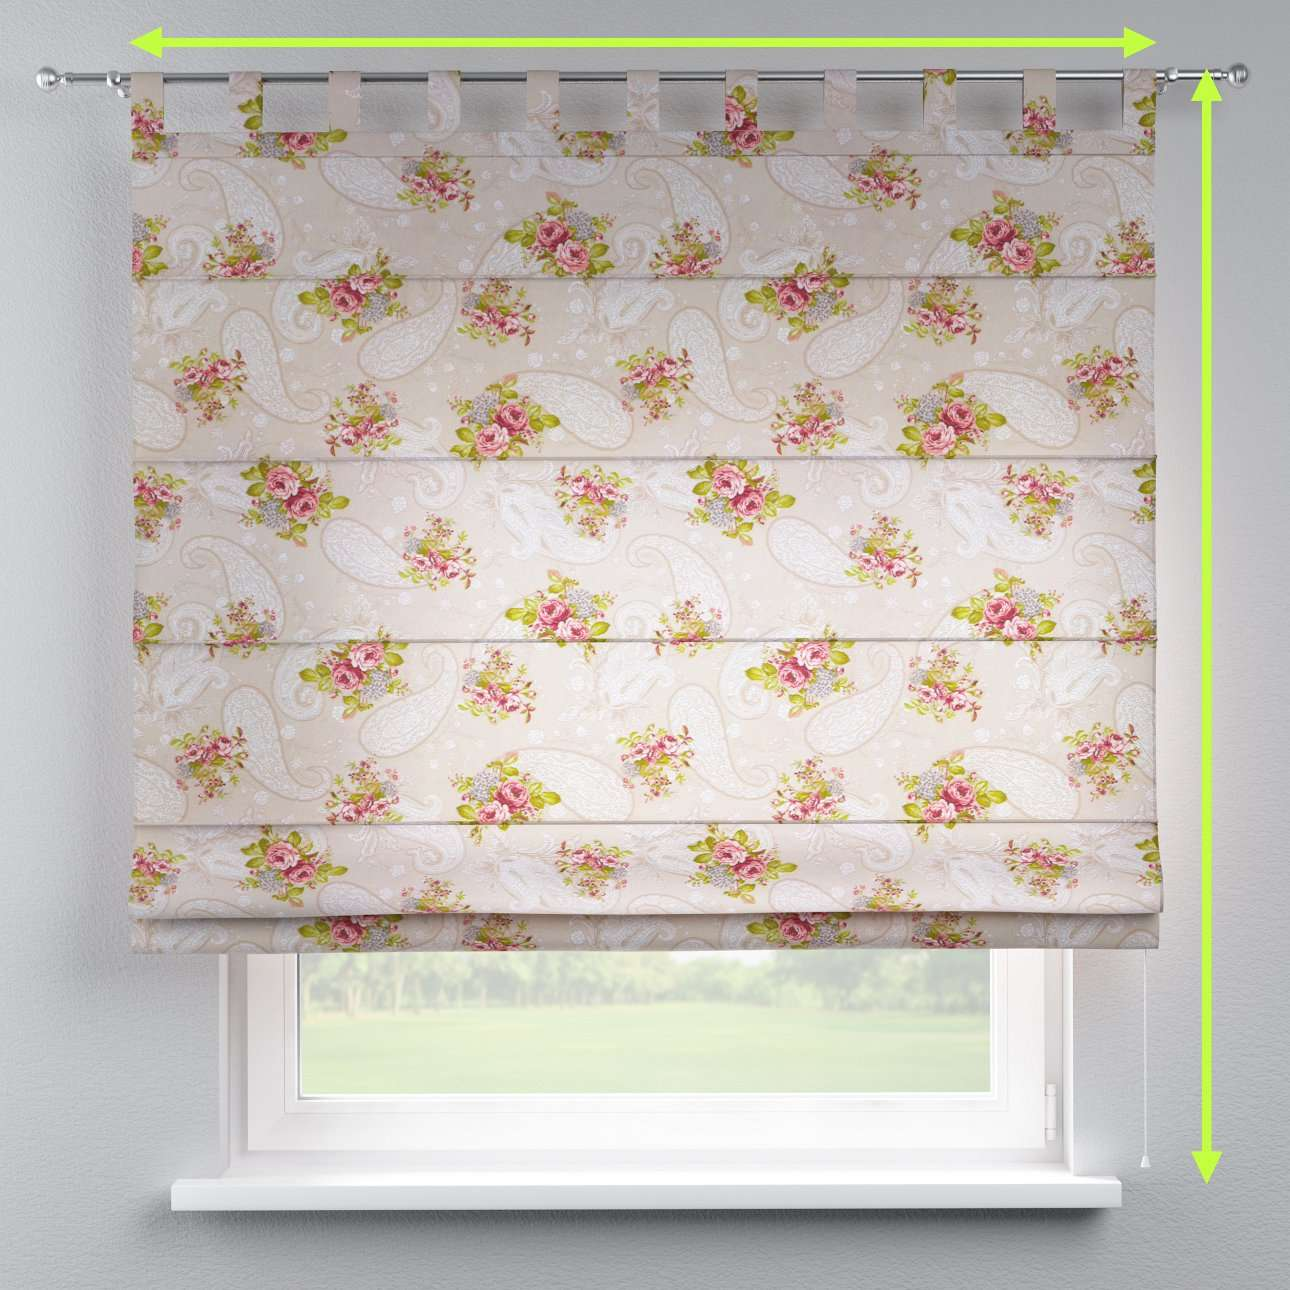 Verona tab top roman blind in collection Flowers, fabric: 311-15